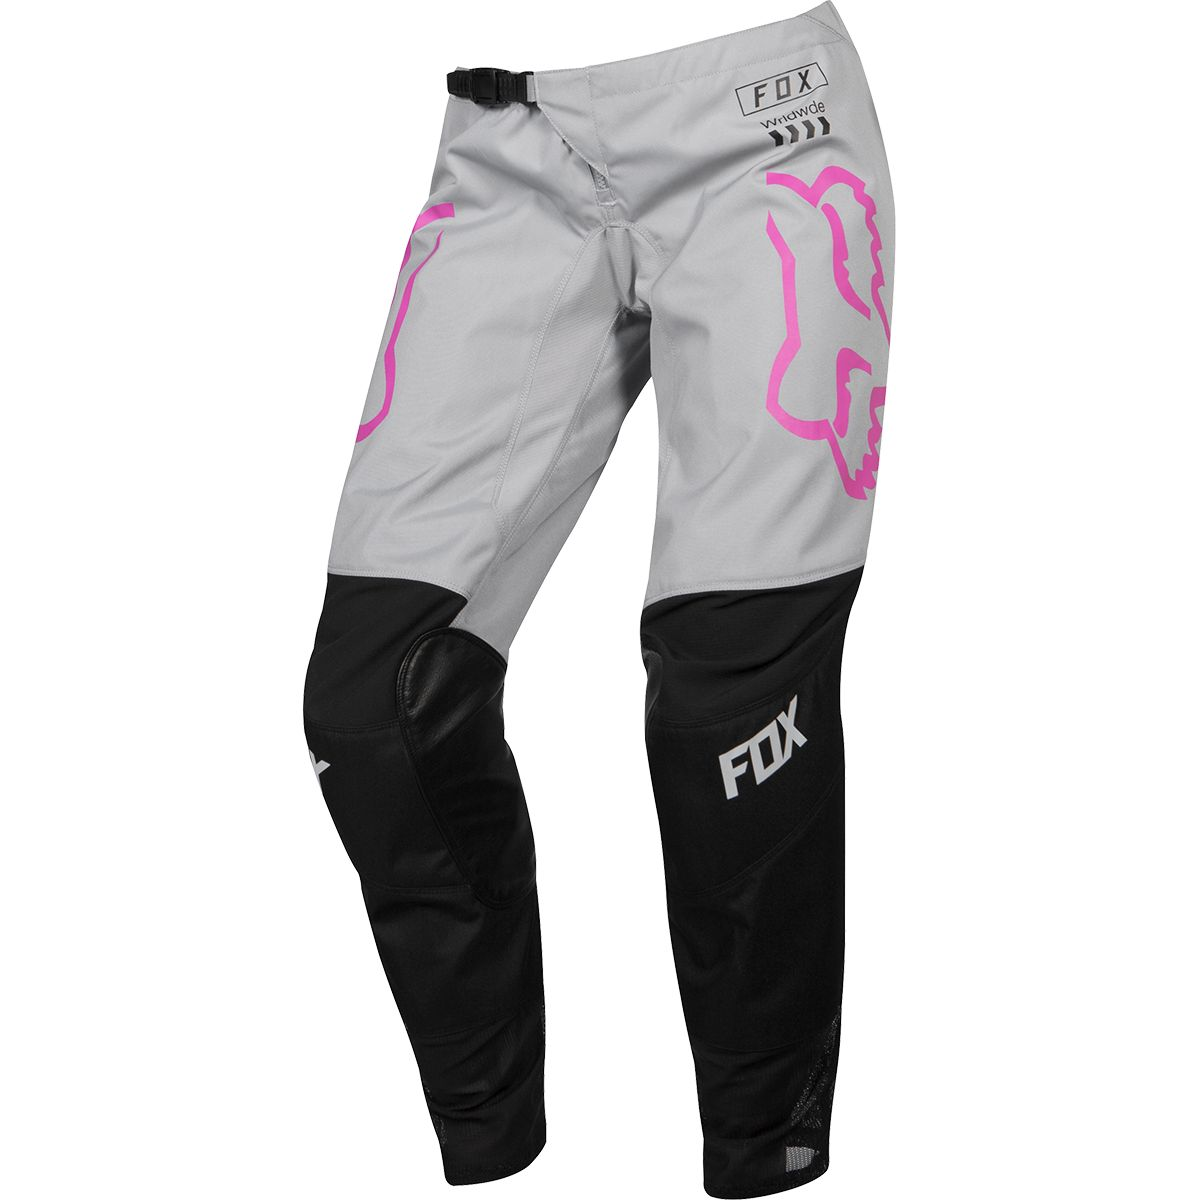 180 MATA PANT women's MTB trousers